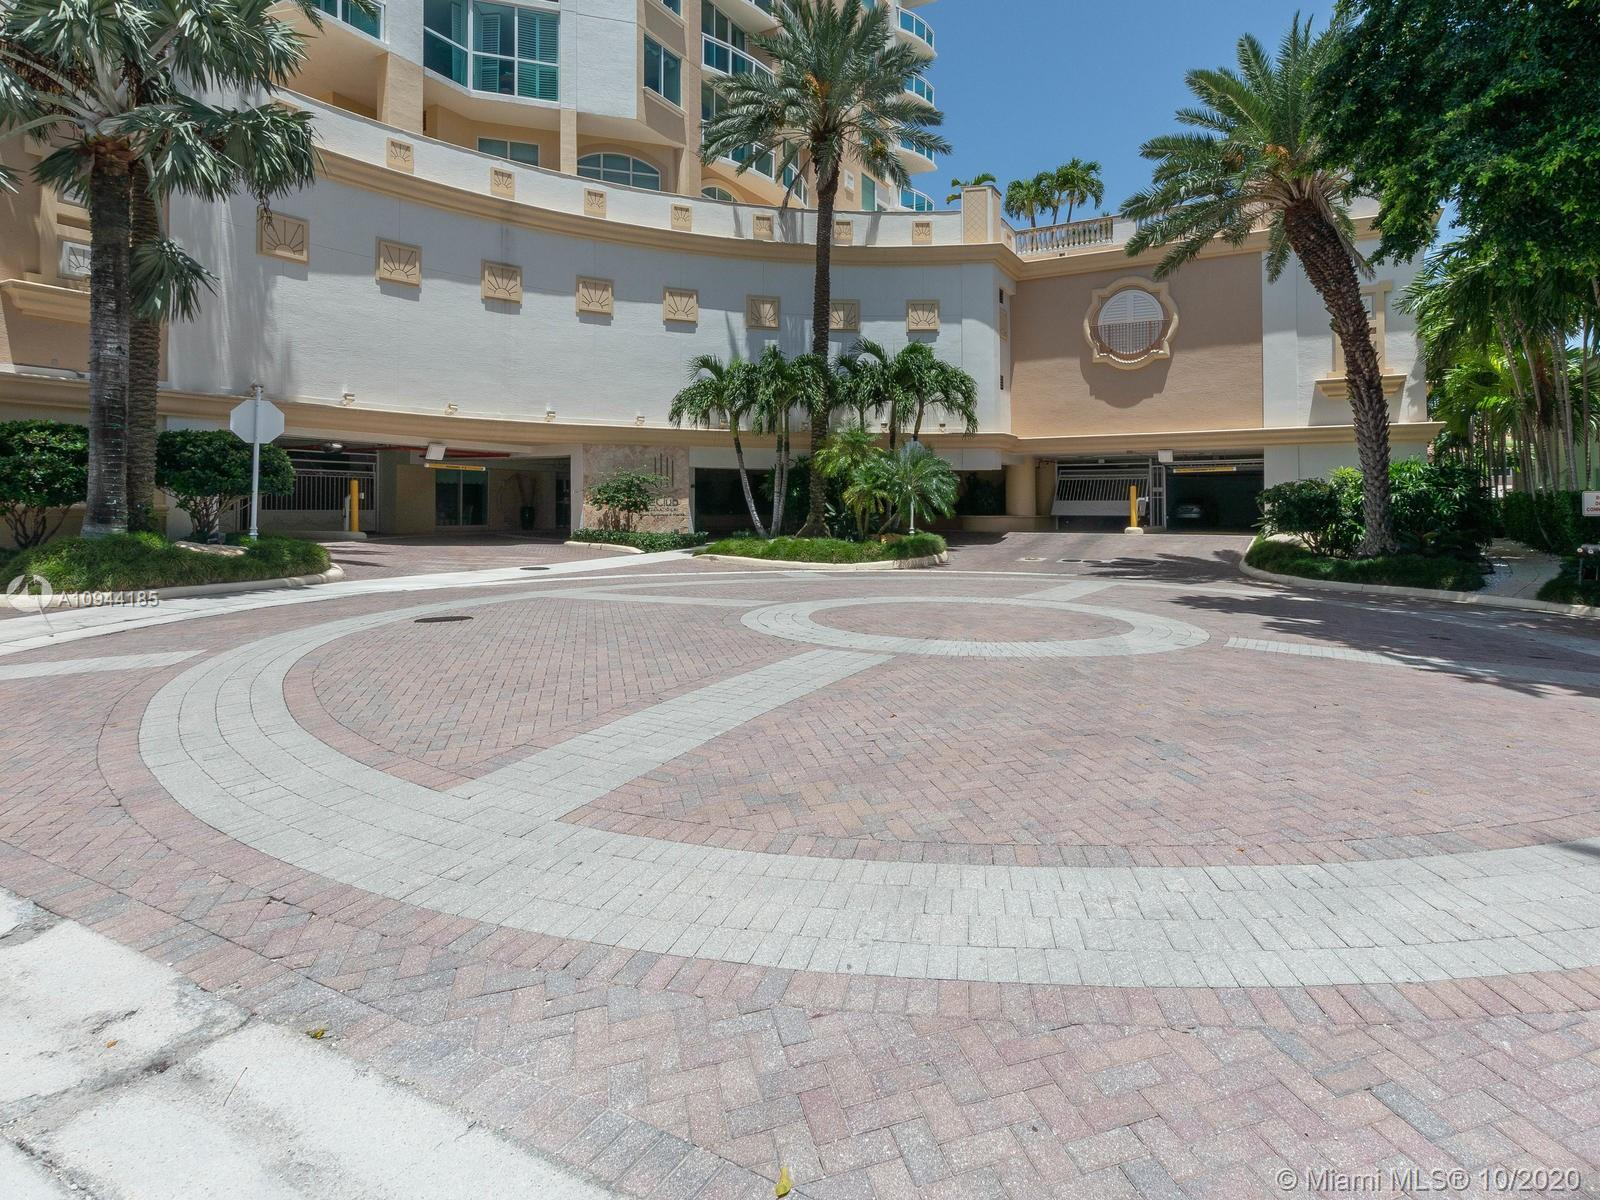 BEAUTIFUL LUXURY 3BR/2BA FURNISHED CONDO WITH PRIVATE ELEVATOR AND FOYER. FLOOR TO CEILING WINDOWS S